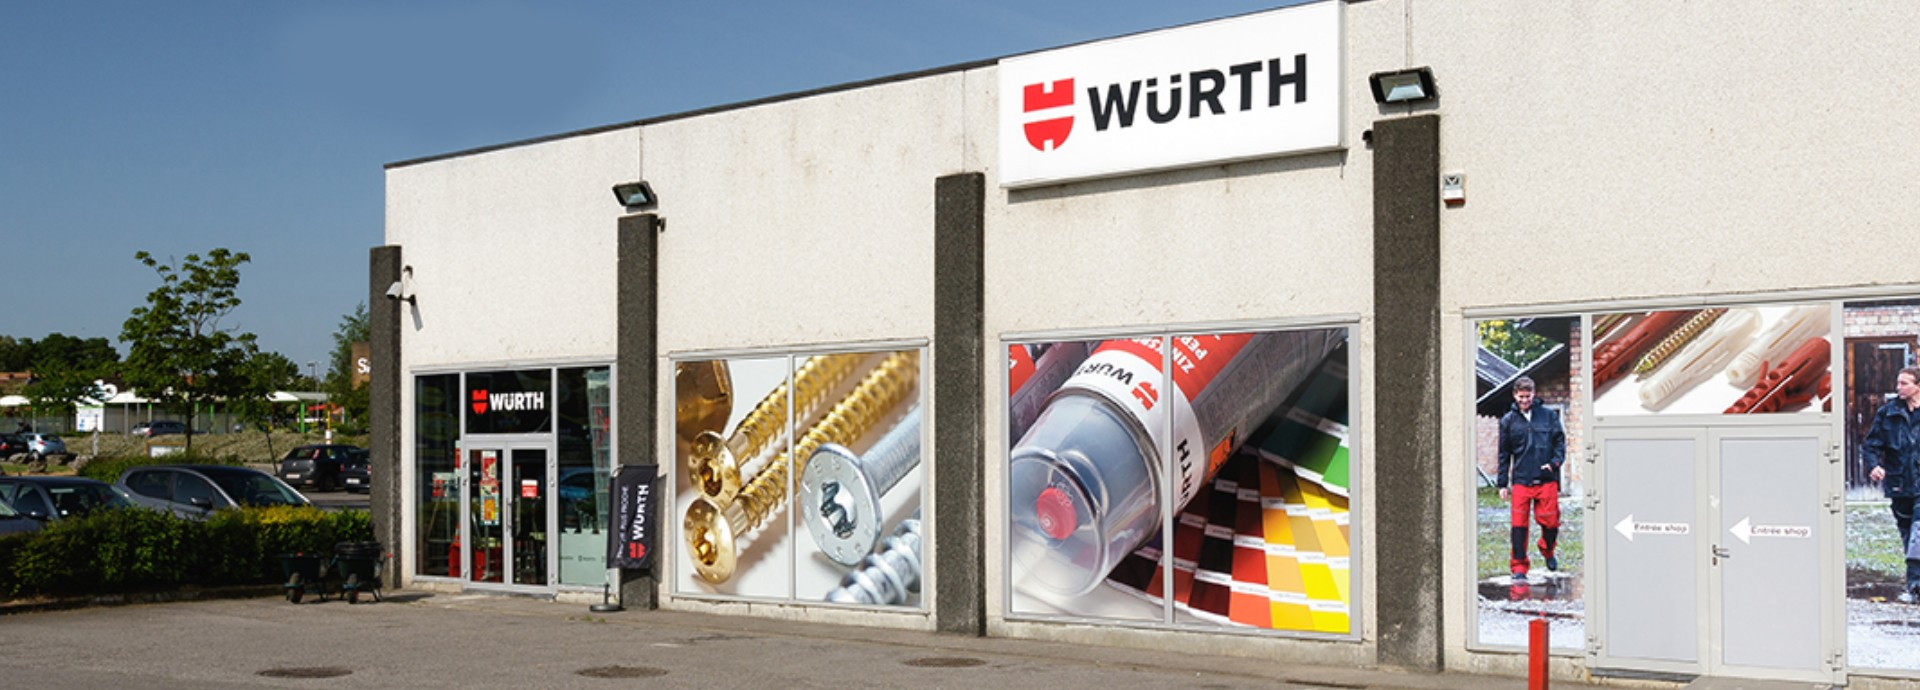 Würth Shop Gosselies